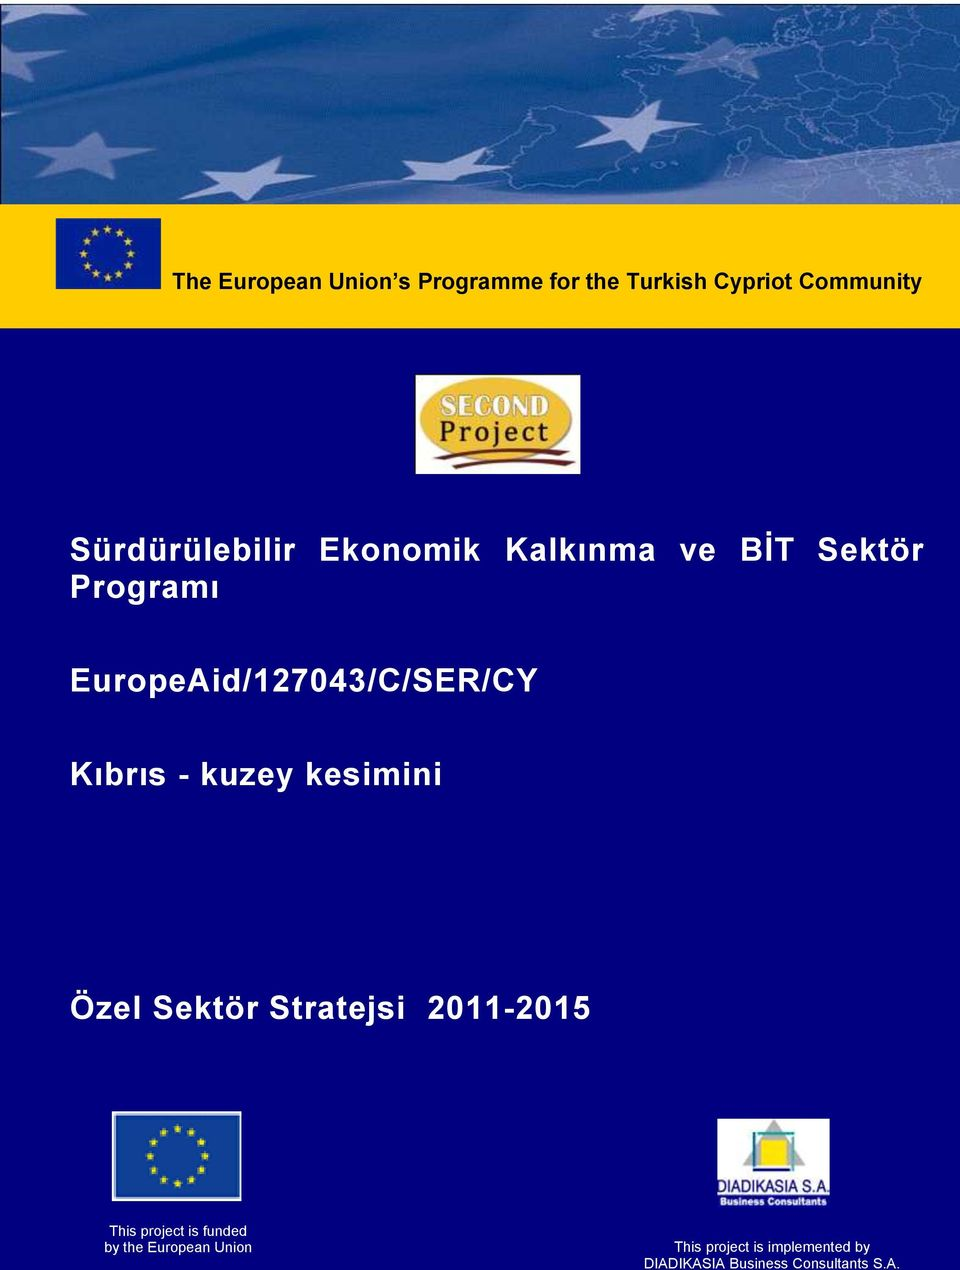 kesimini Özel Sektör Stratejsi 2011-2015 This project is funded by the European